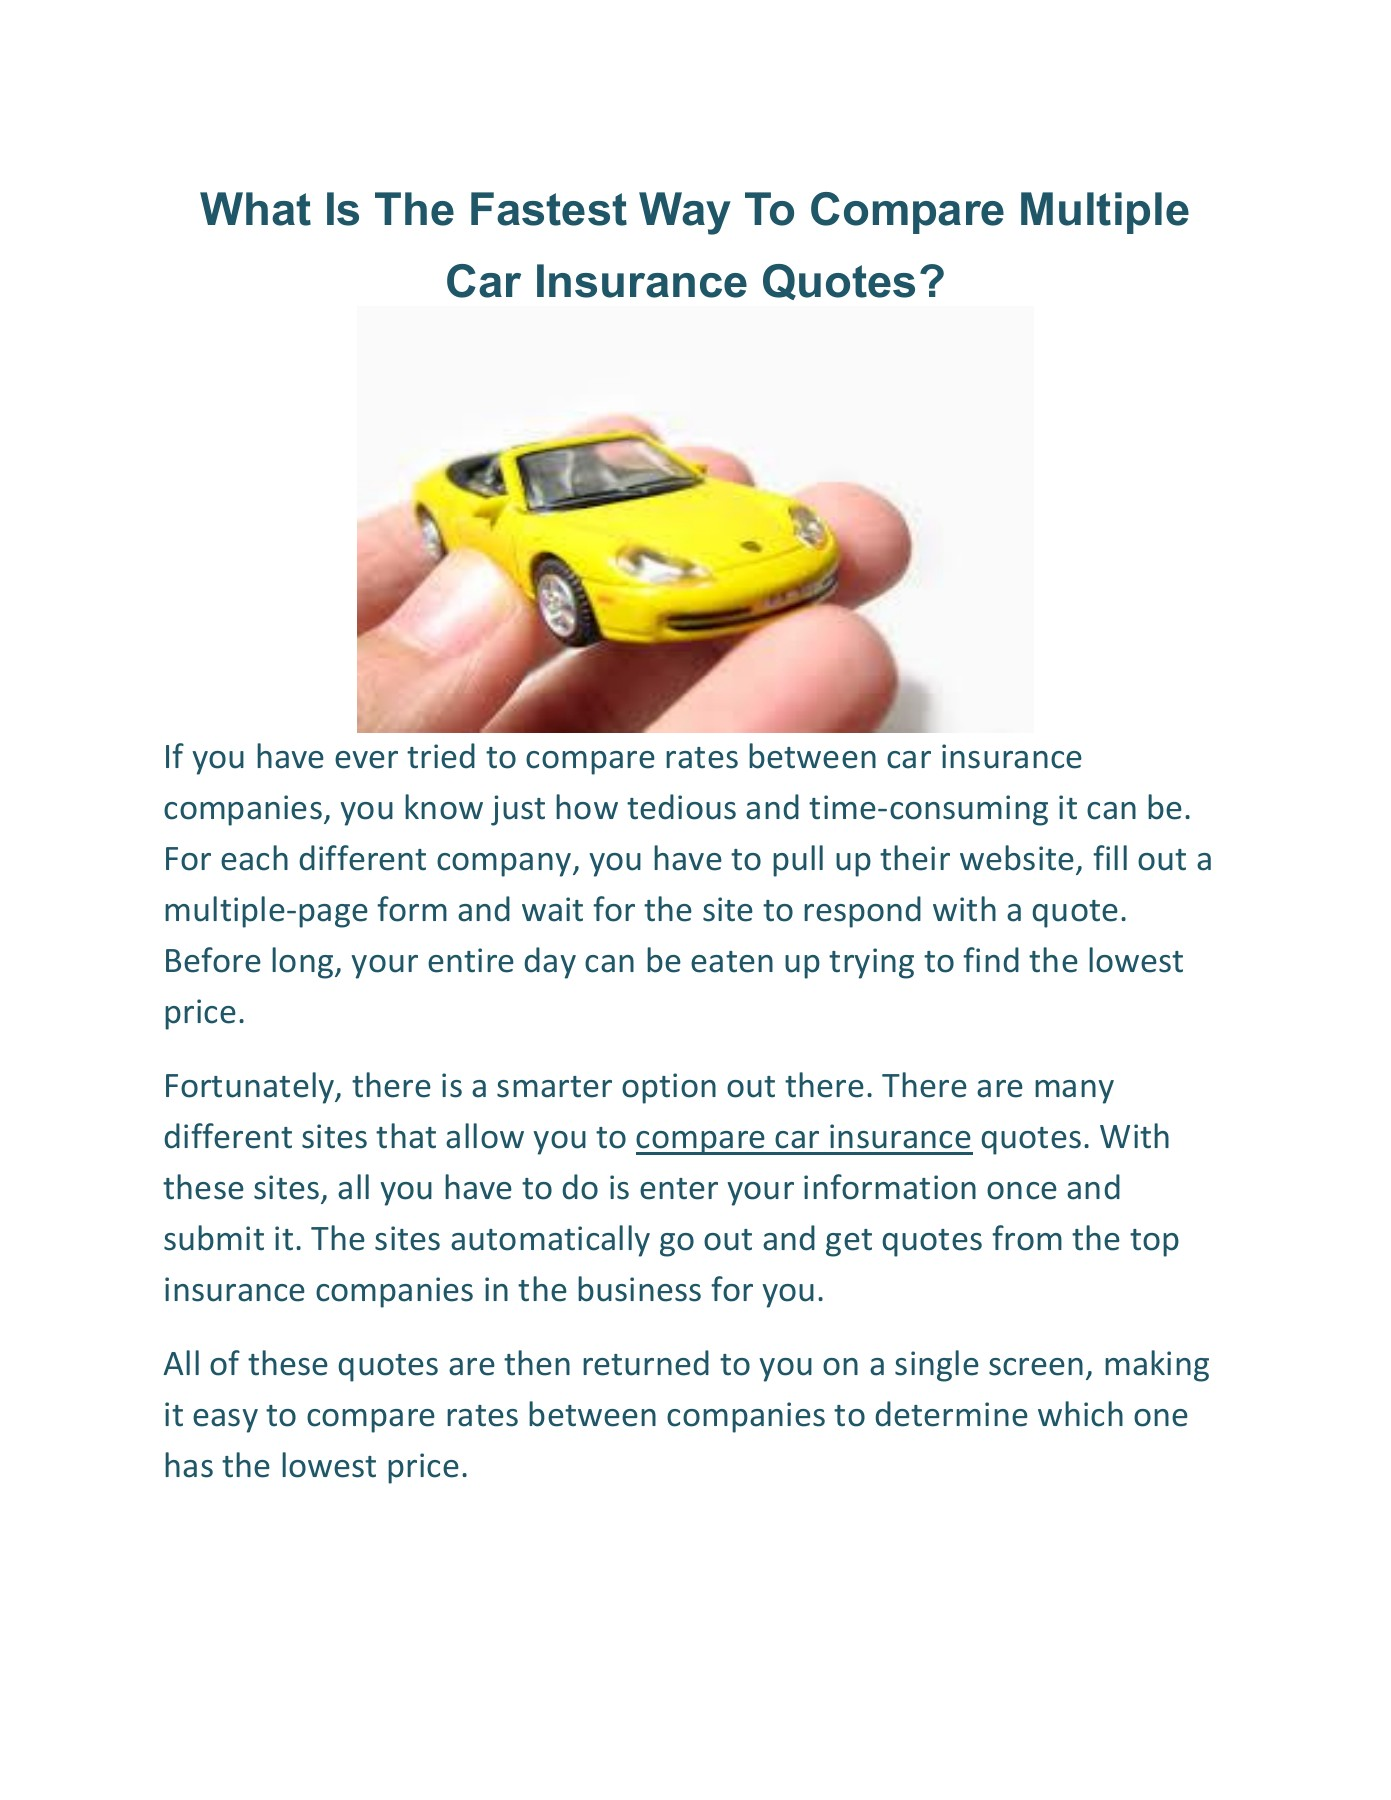 What Is The Fastest Way To Compare Multiple Car Insurance Quotes 1